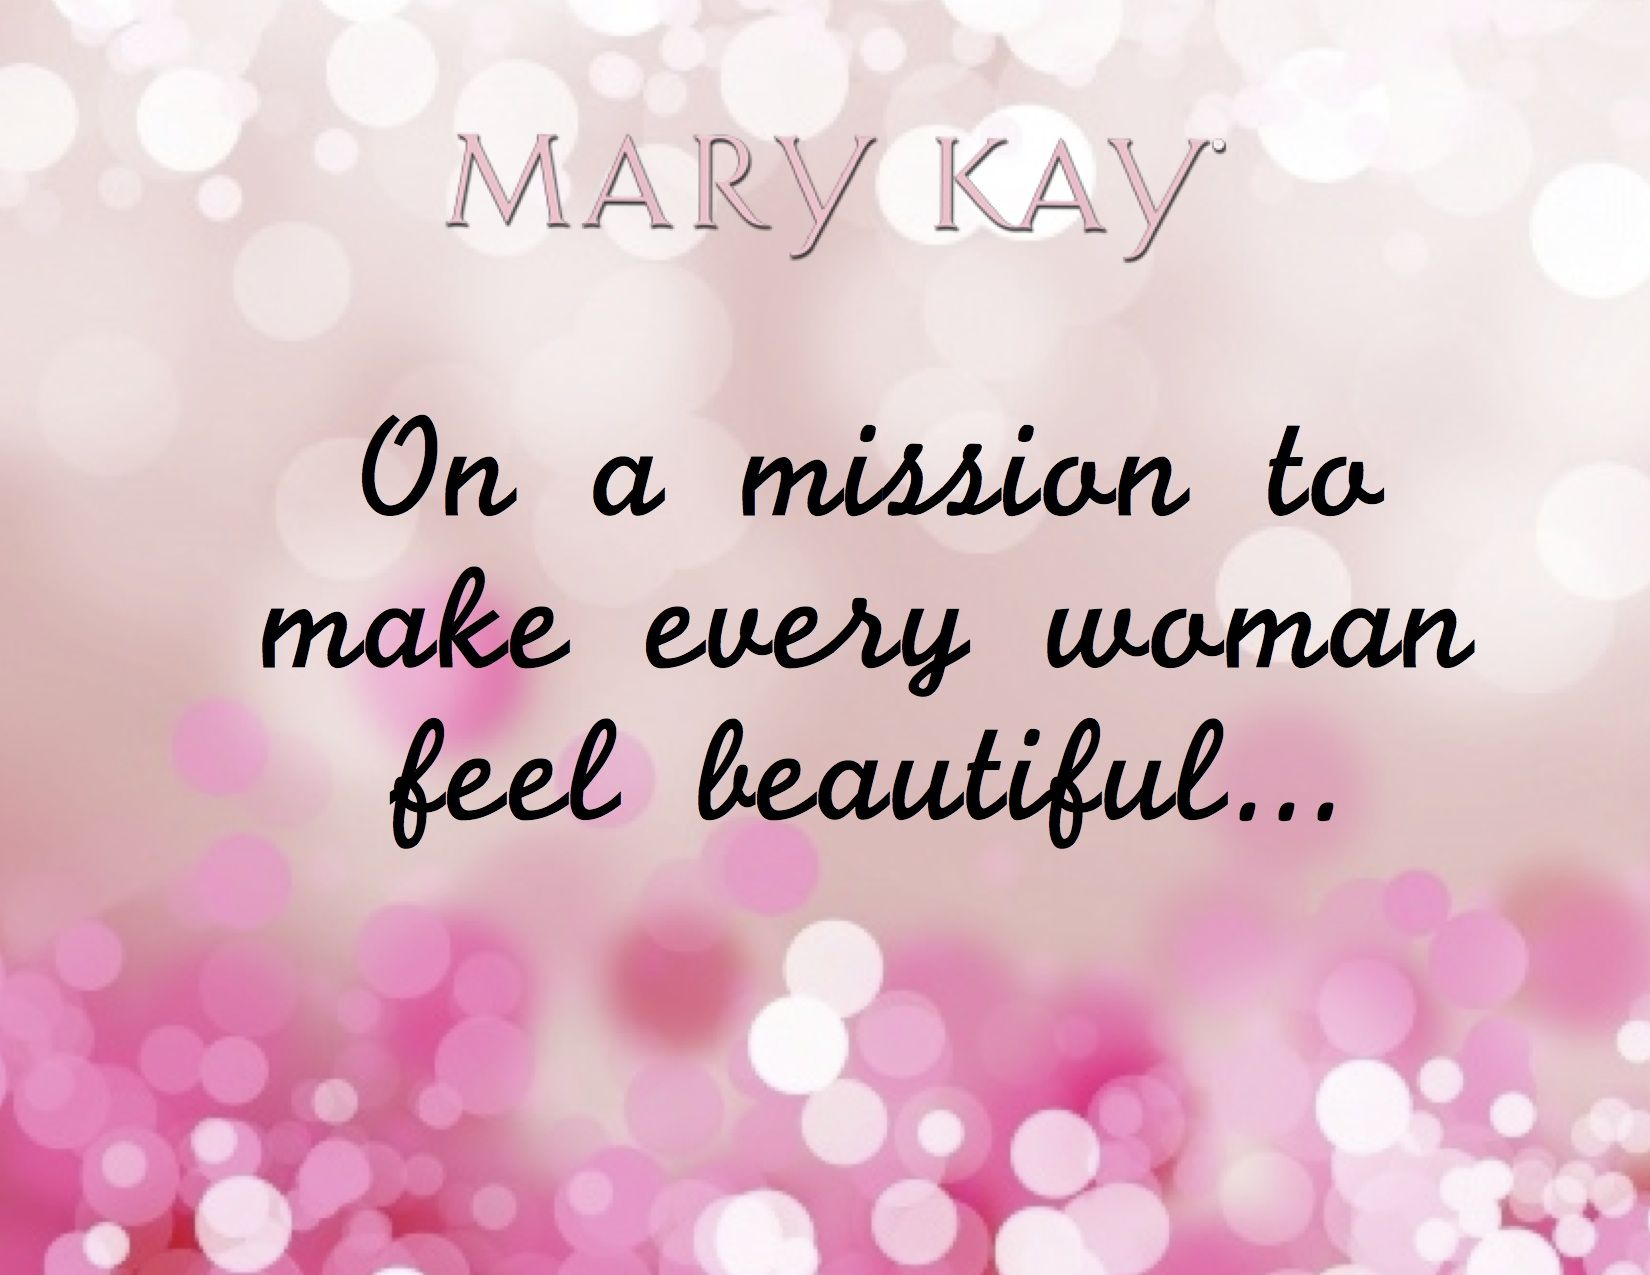 As A Mary Kay Independent Beauty Consultant This Is My Personal